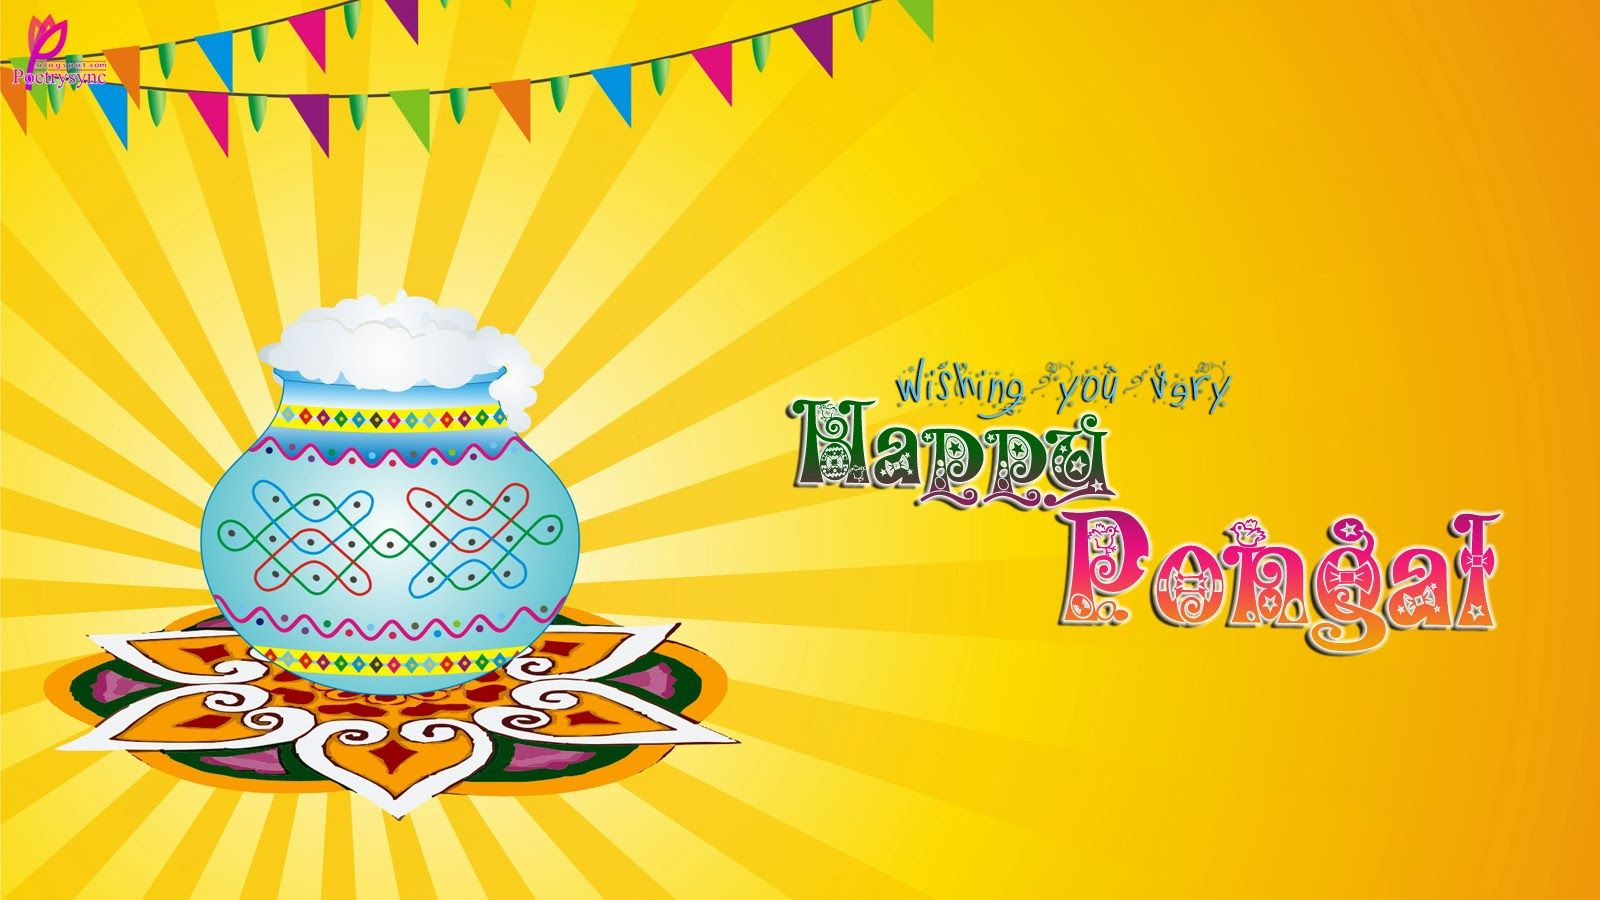 Beautiful Pongal Greetings Card For Lovers Happy Pongal Wish